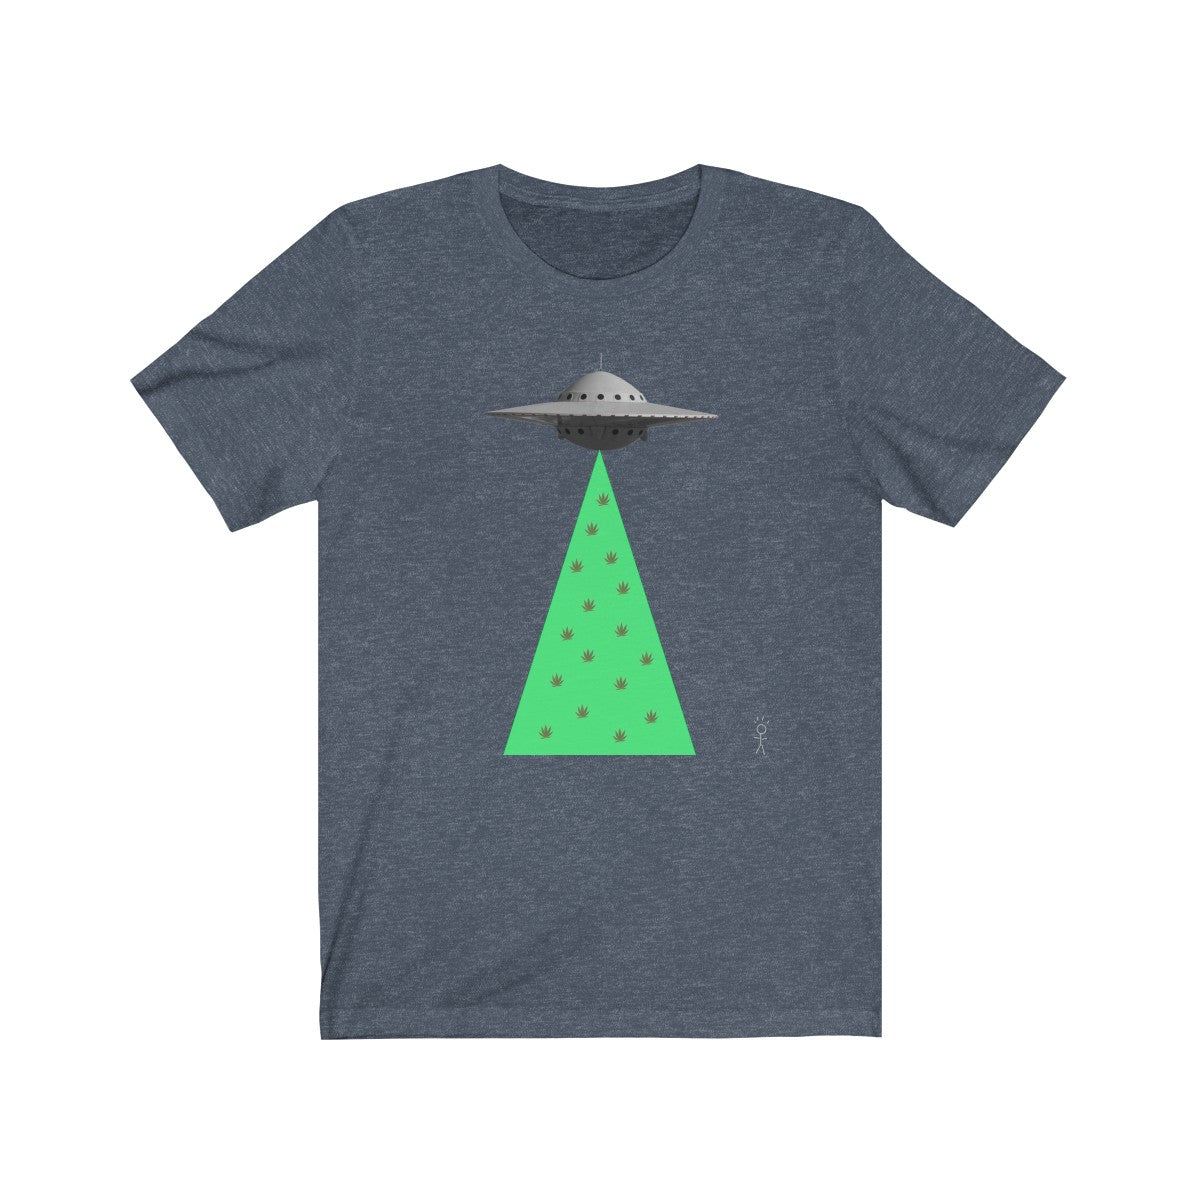 (UFO POT) Unisex Jersey Short Sleeve Tee - lol - LOL, I Need that! LLC